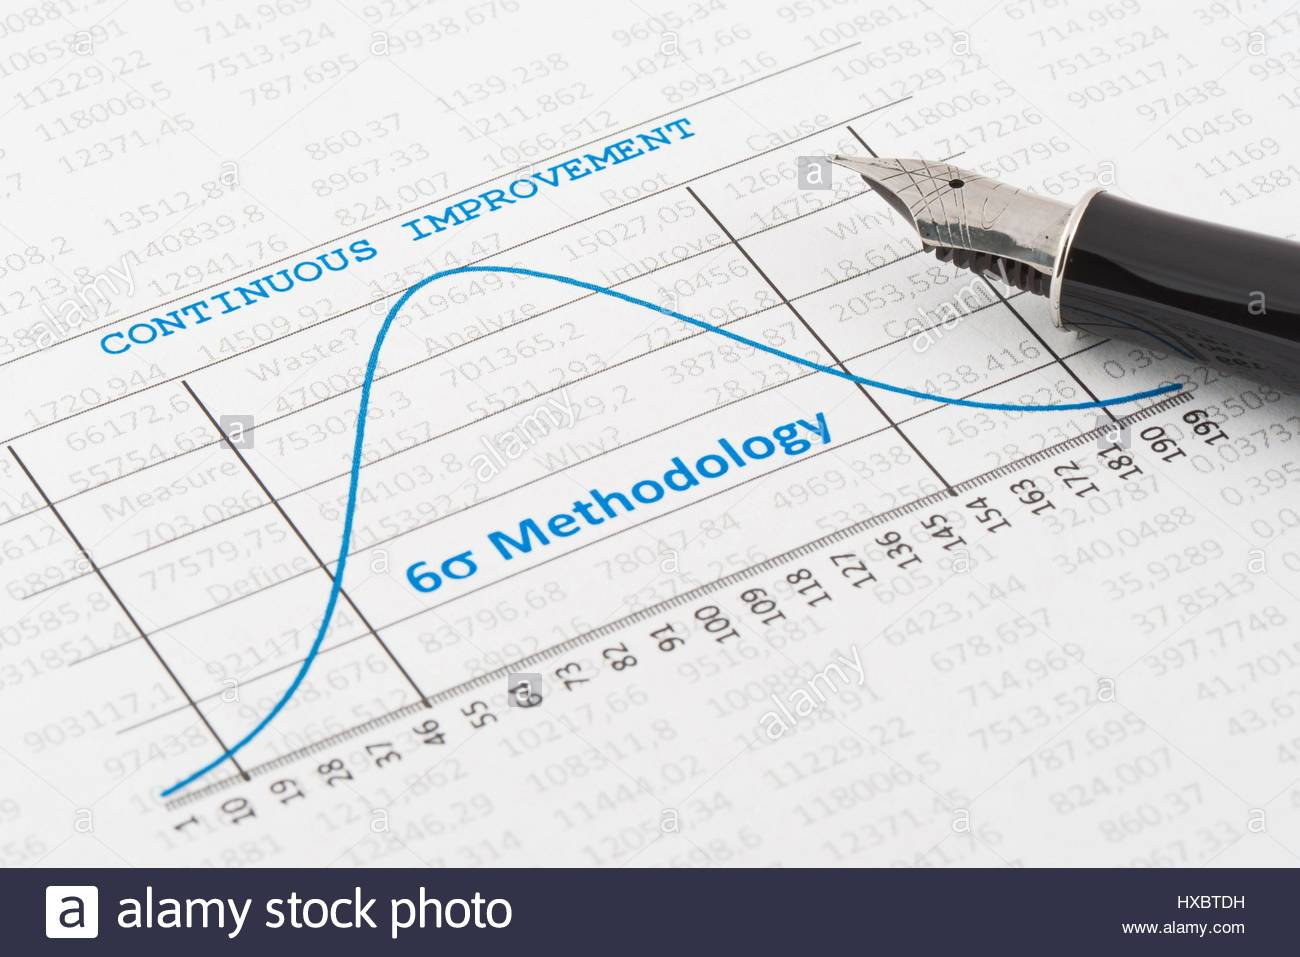 Continuous Improvement in business with Six Sigma Methodology - Stock Image